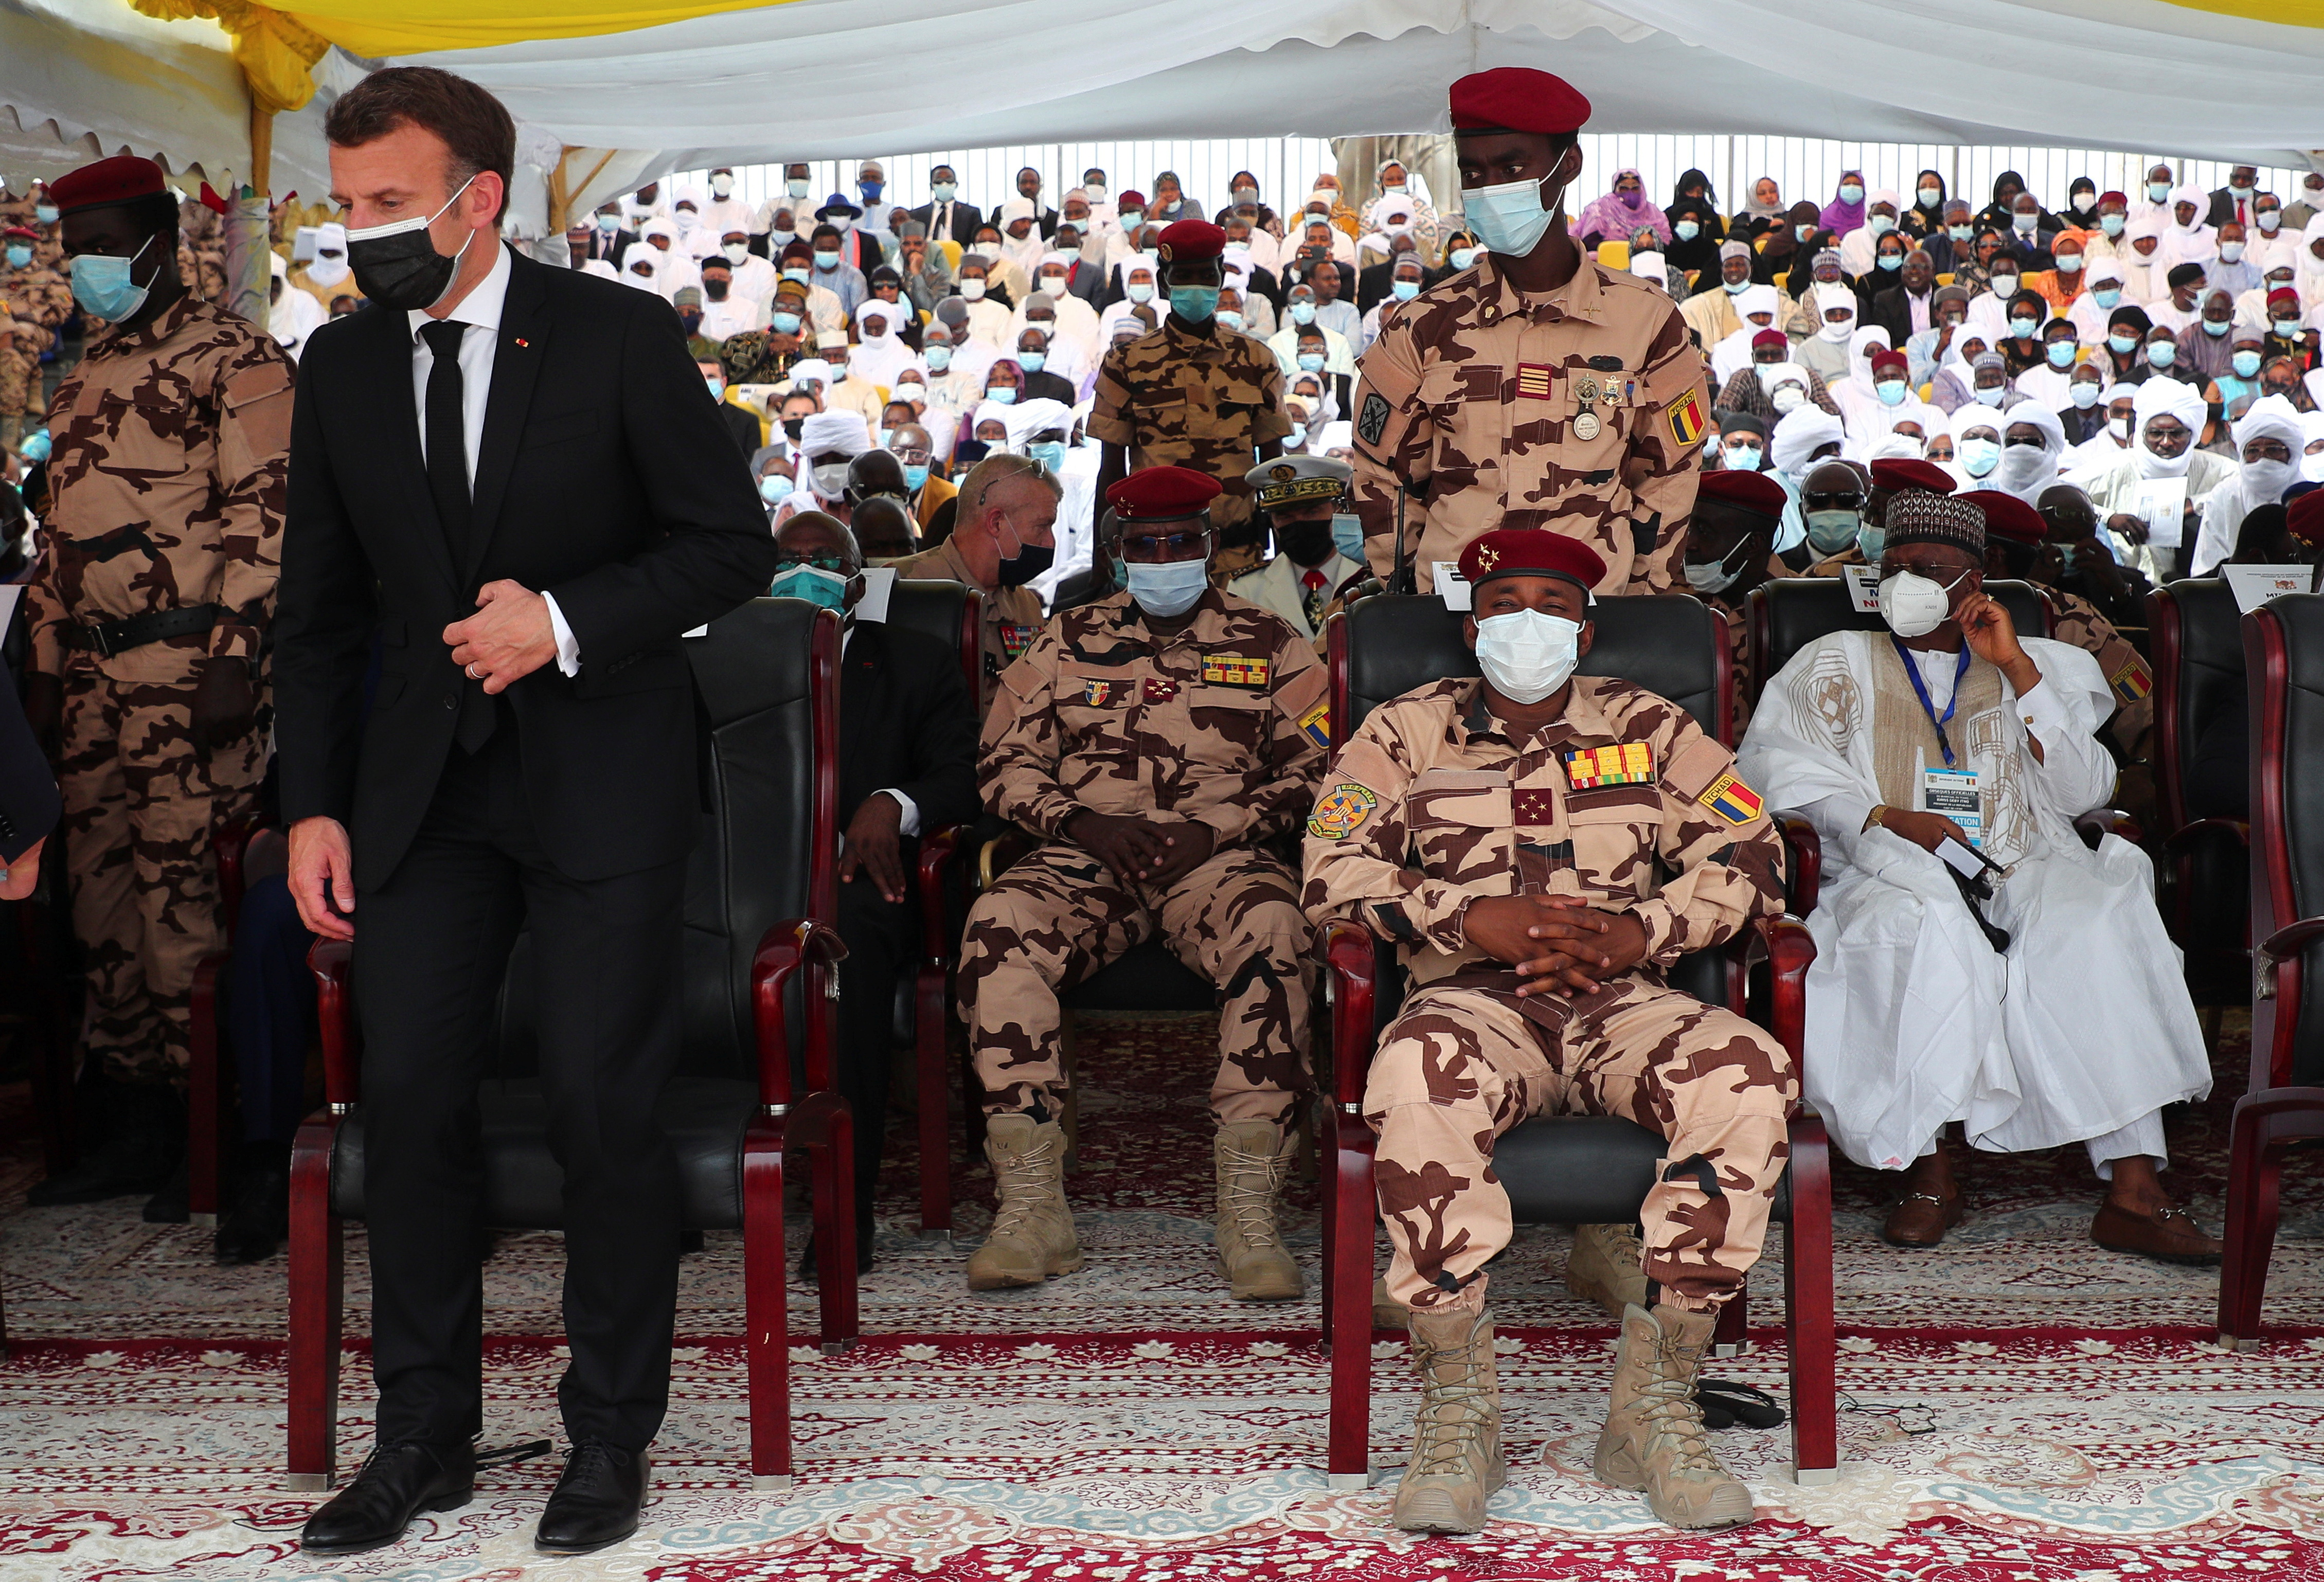 French President Emmanuel Macron takes his seat in the front row next to Mahamat Idriss Deby, son of the late Chad's president, during the state funeral for the late Chadian President Idriss Deby in N'Djamena, Chad April 23, 2021. Christophe Petit Tesson/Pool via REUTERS